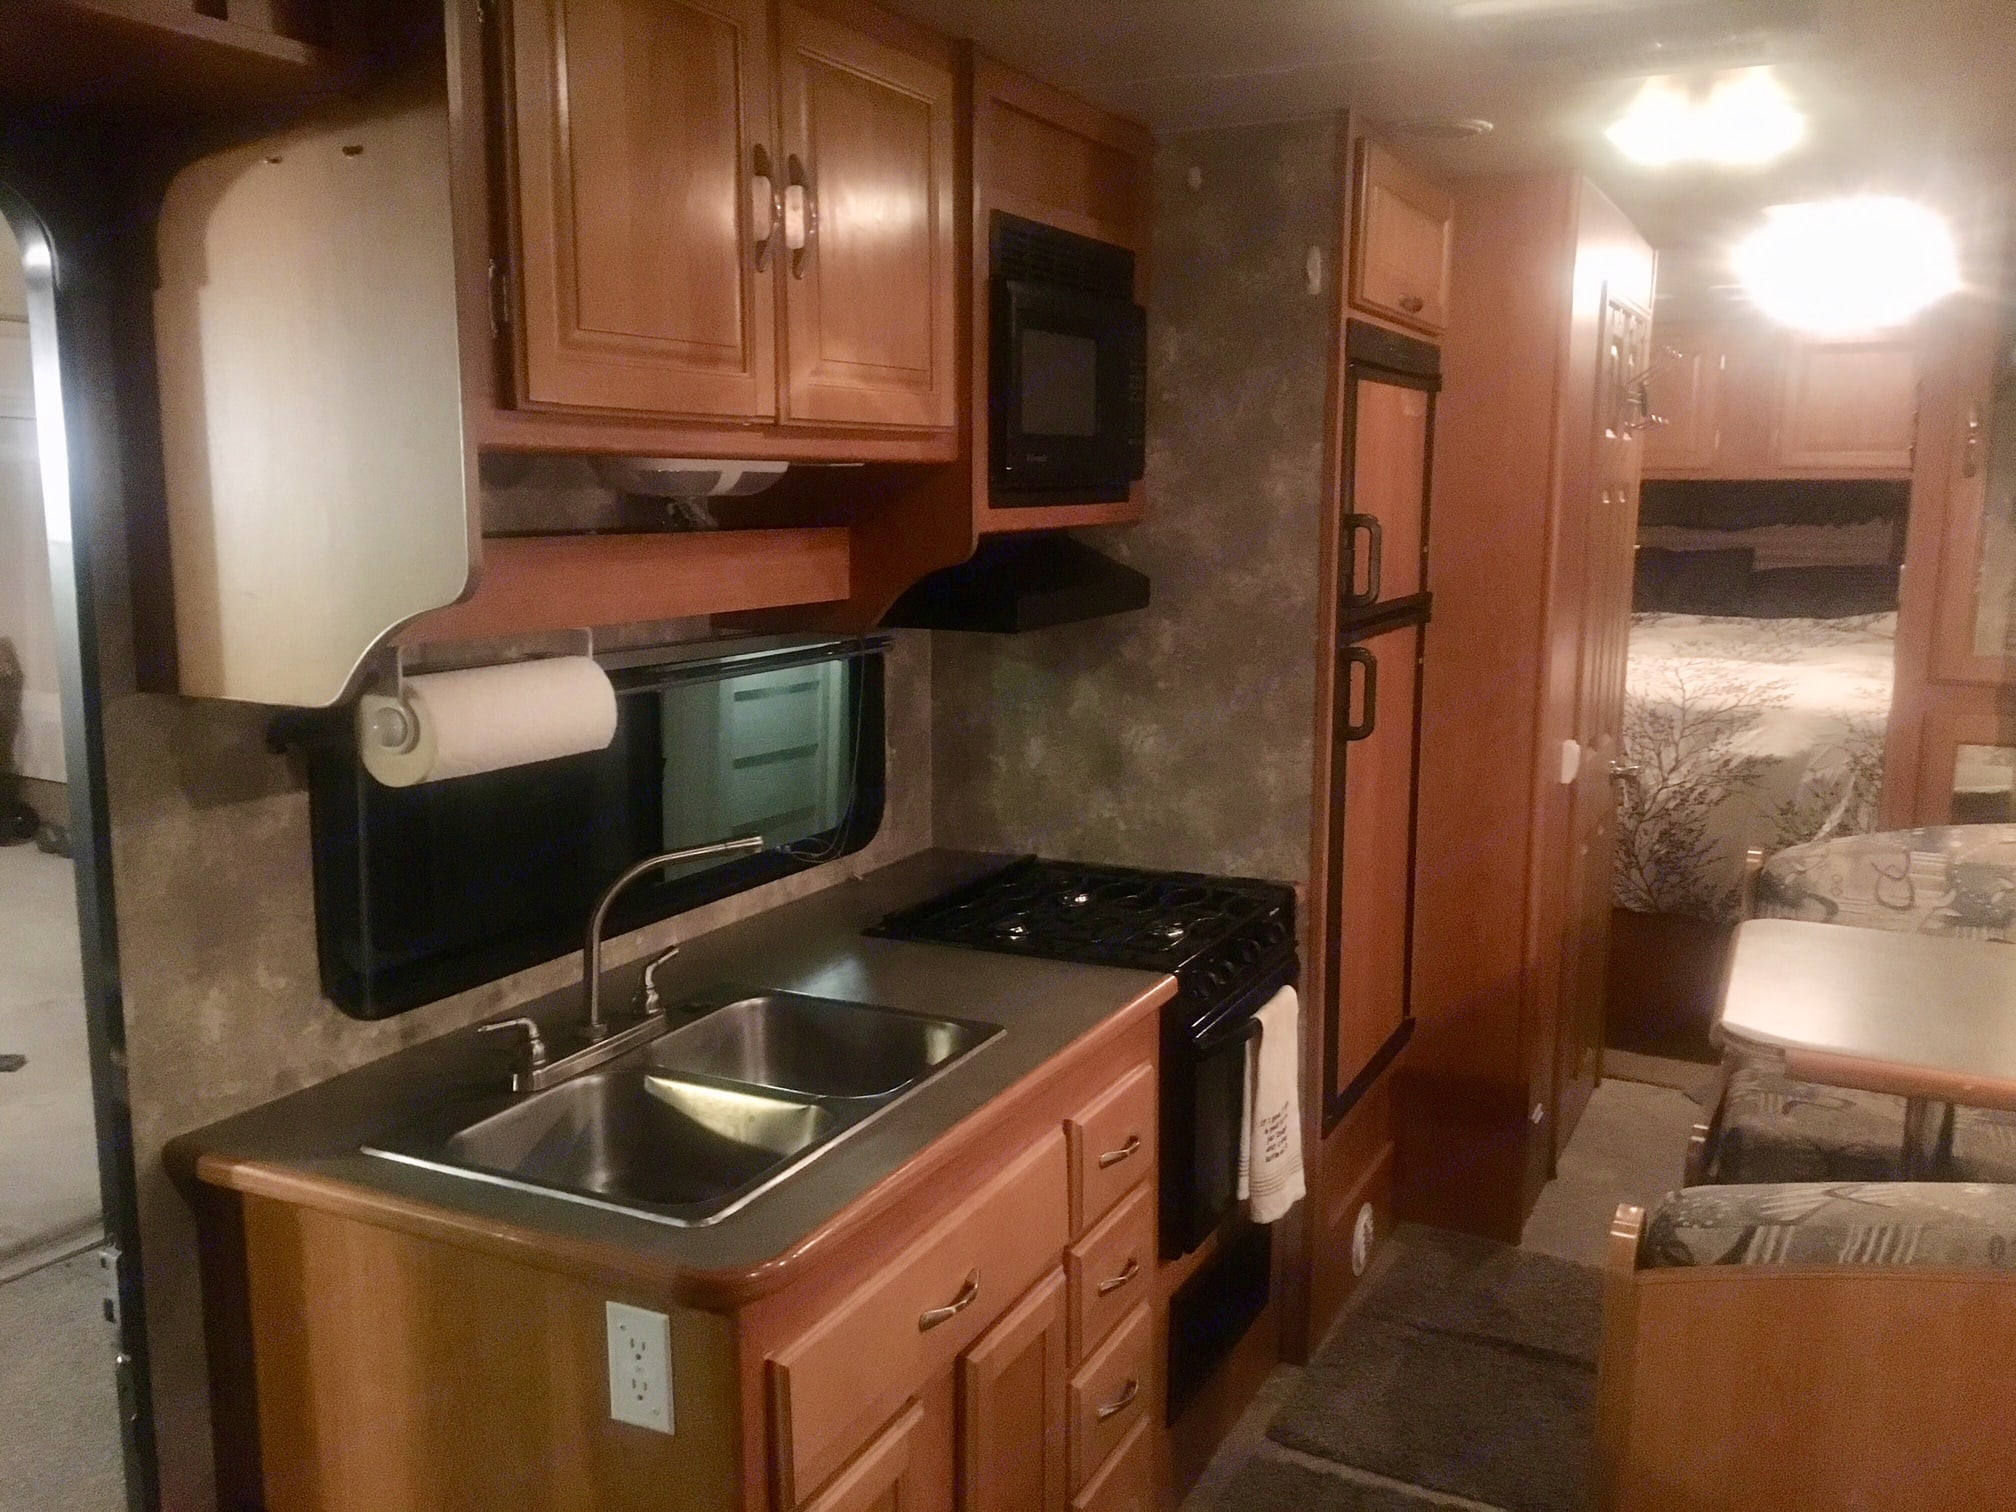 Large functional kitchen with refrigerator/freezer, 3 burner stove top, propane oven and double sink. Fully stocked with plates, silverware, cooking utensils, pots and pans, glasses, coffee cups, single use Keurig, and more.. Coachmen Freelander 2007